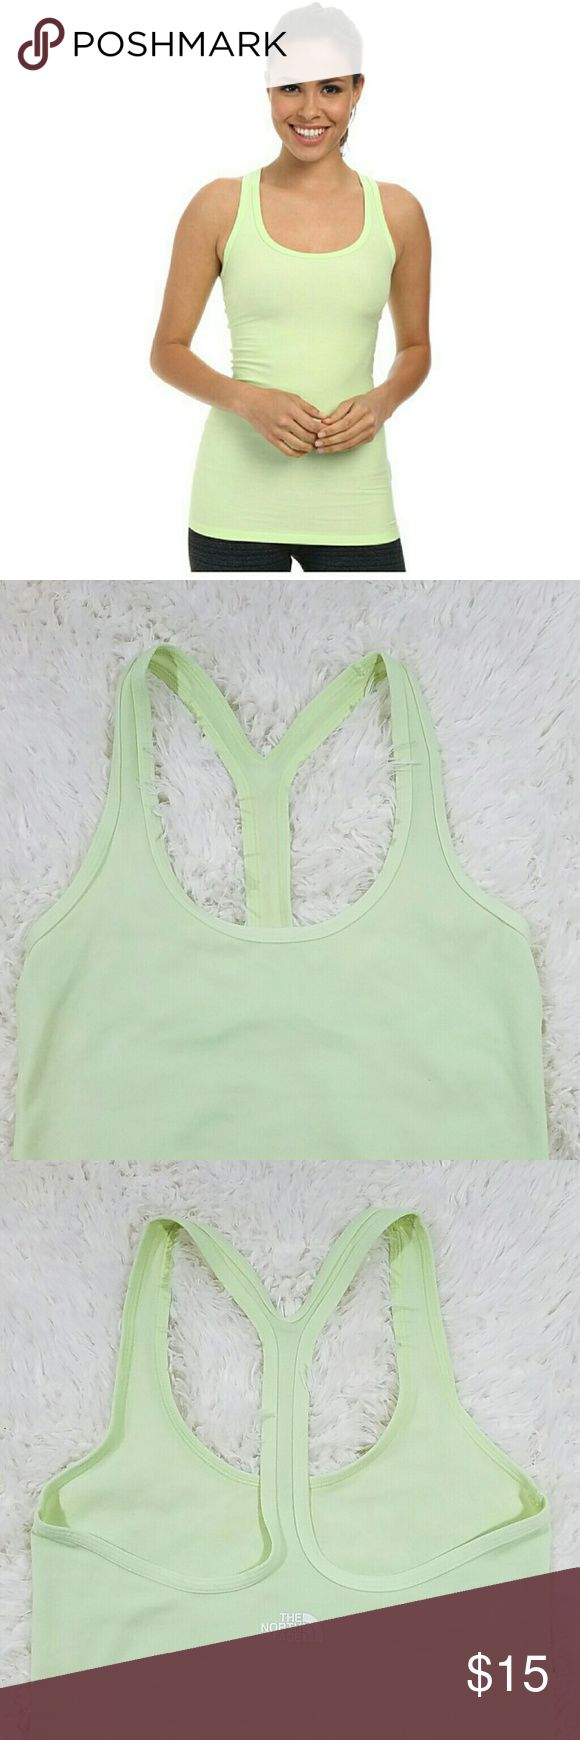 The North Face Razorback Active Tank Top size s The North Face tank top in a pretty light green color.  It is made a stretch fabric.  It is in good condition with no tears or holes.   516N26 The North Face Tops Tank Tops